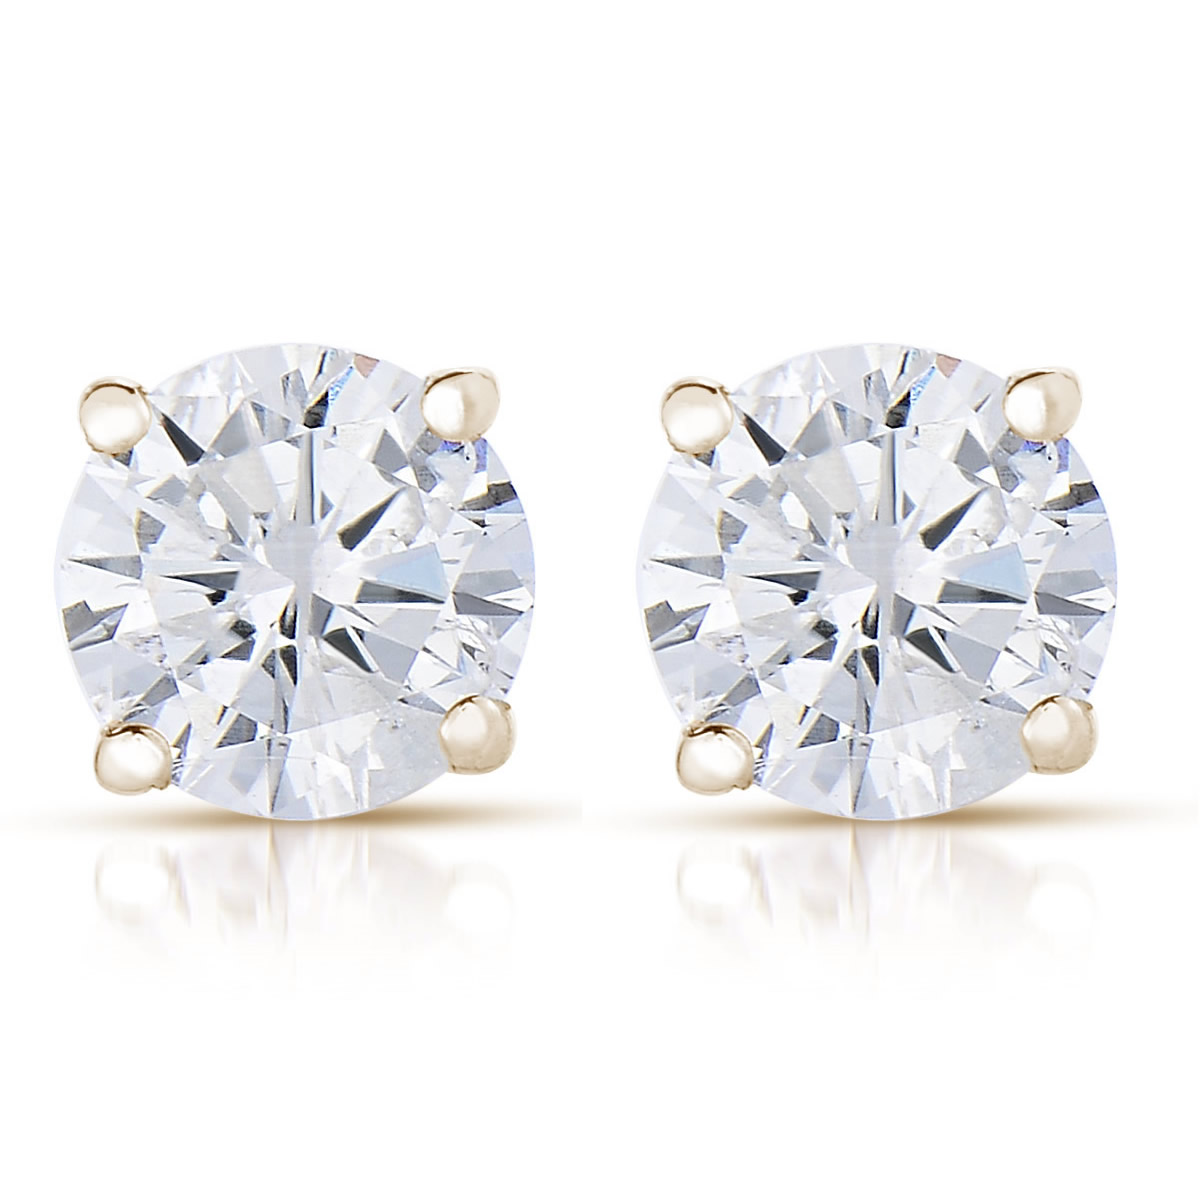 8e18a1135 Vir Jewels - Vir Jewels 1/4 cttw (I2-I3 Clarity, K-M Color) Round Diamond  Stud Earrings 14K White Gold - Walmart.com